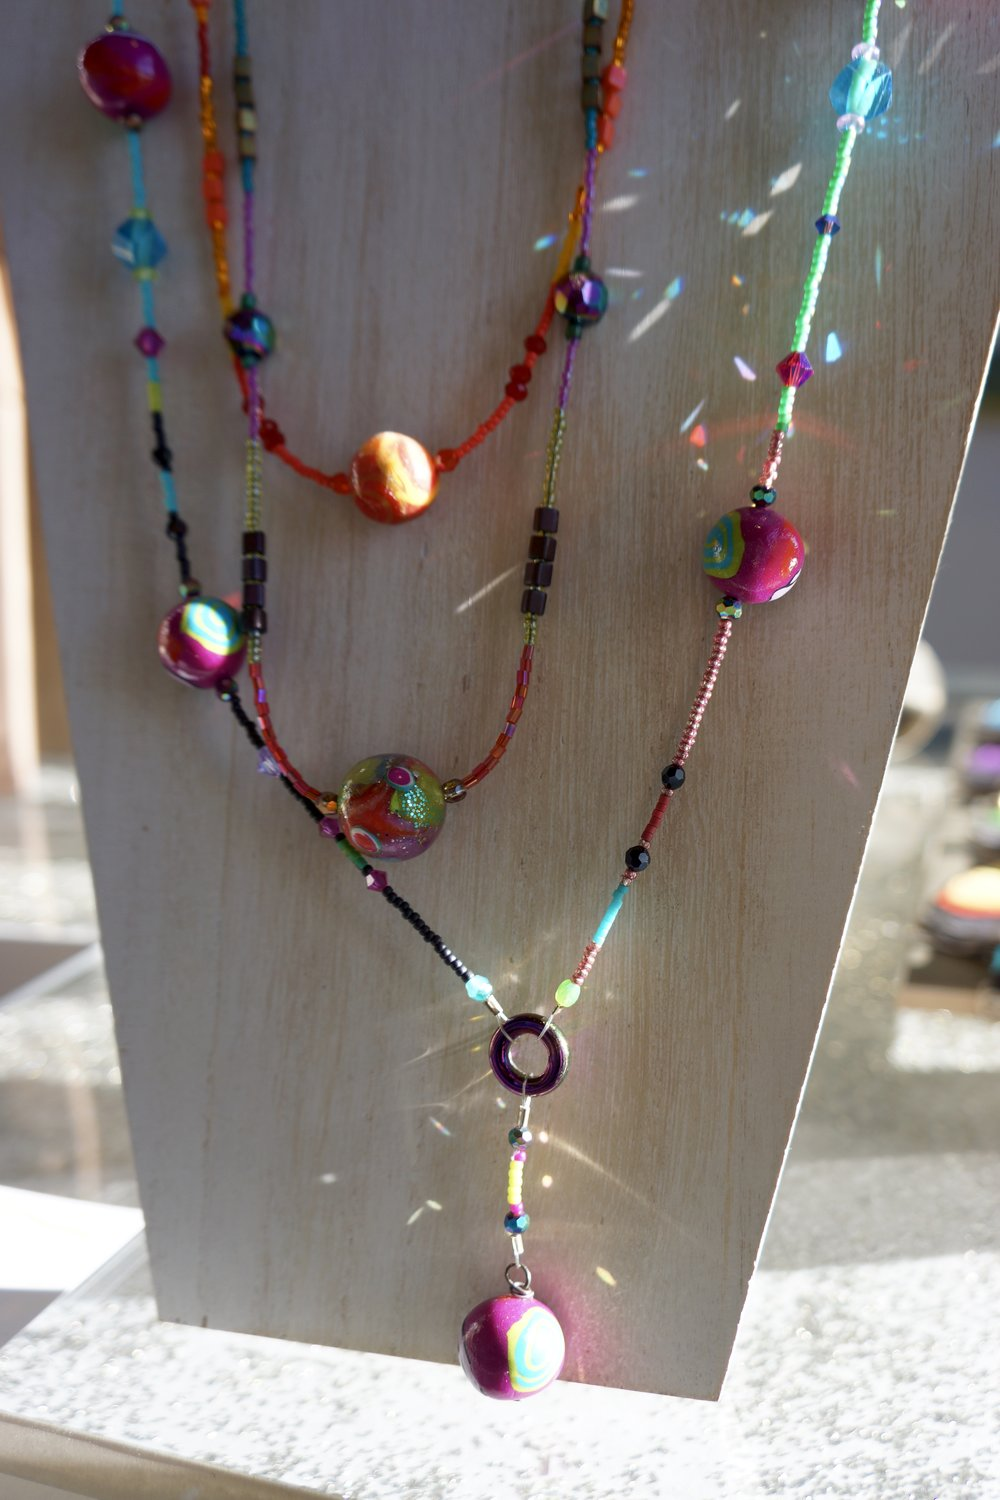 HAND BEAADED JEWELRY BY MICHELLE COURIER STARTING AT $50.00